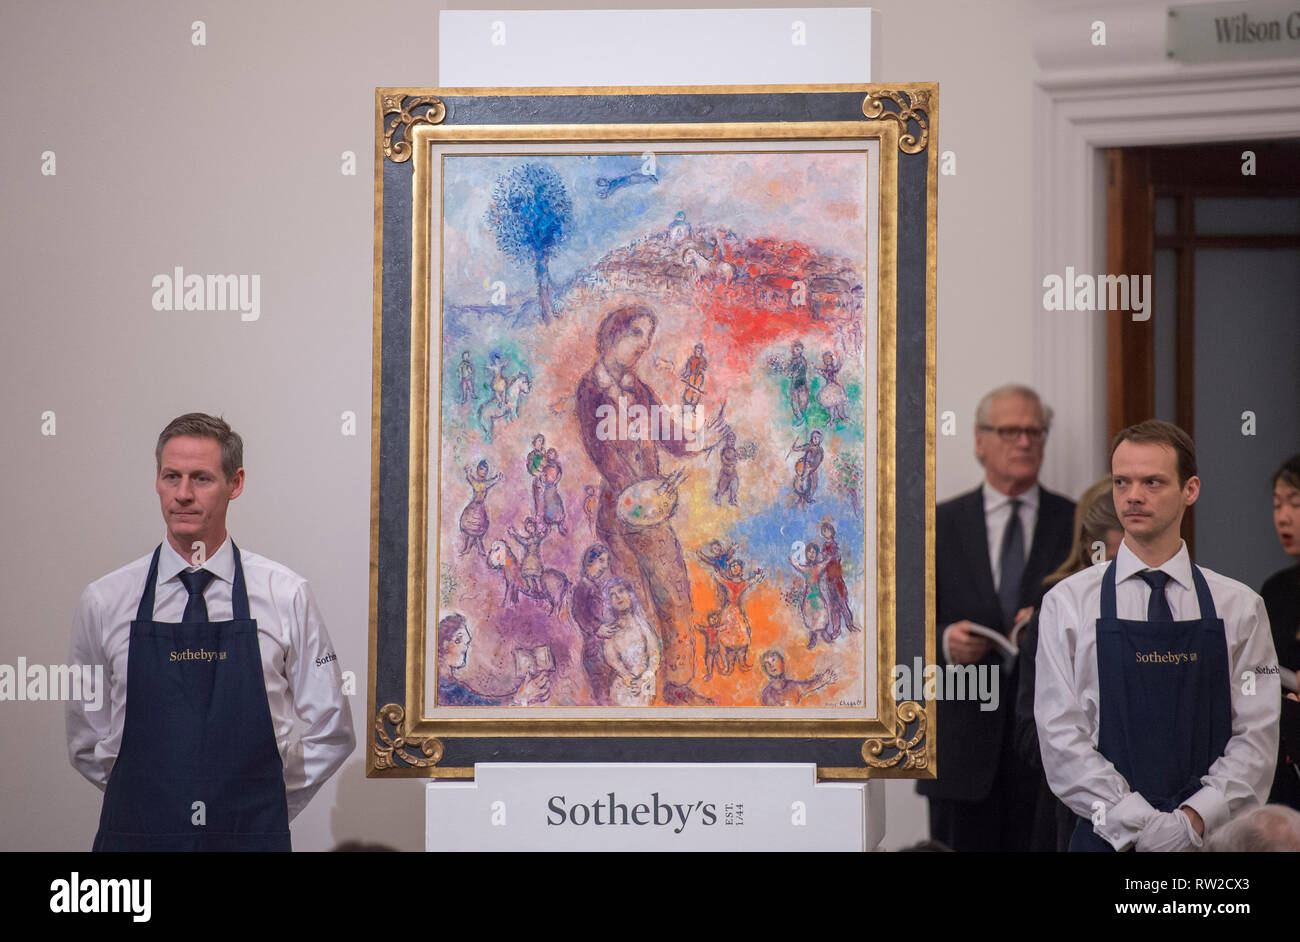 Sotheby's, New Bond Street, London, 26 February 2019. Impressionist, Modern and Surrealist Art evening sale. Marc Chagall sells for £1,755,000. - Stock Image